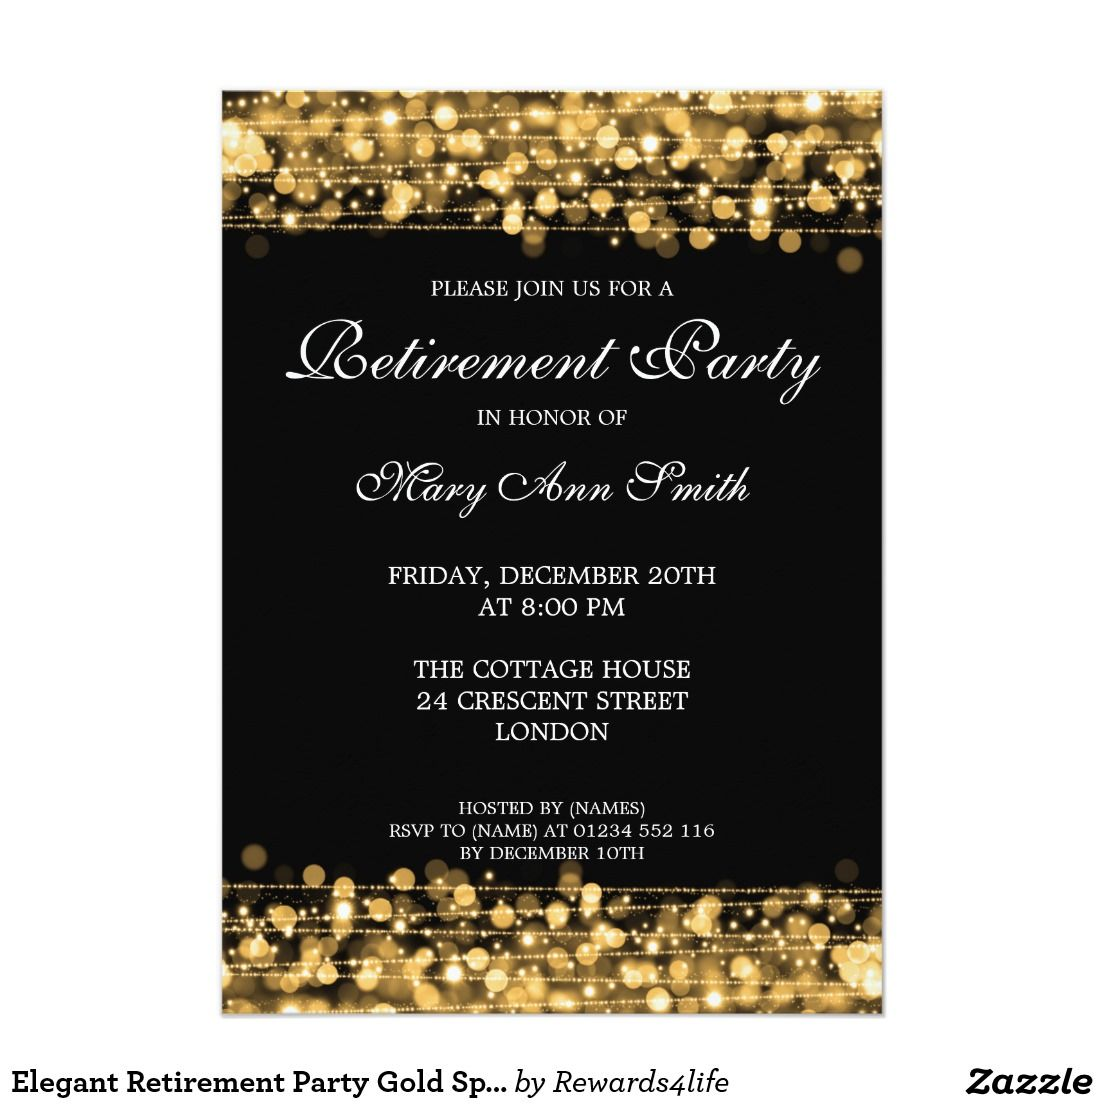 Extraordinary Retirement Party G Sparkles Card Retirement Party G Sparkles Card Retirement Party Ideas Retirement Party Invitations Downloads Free Retirement Party Invitations Walgreens